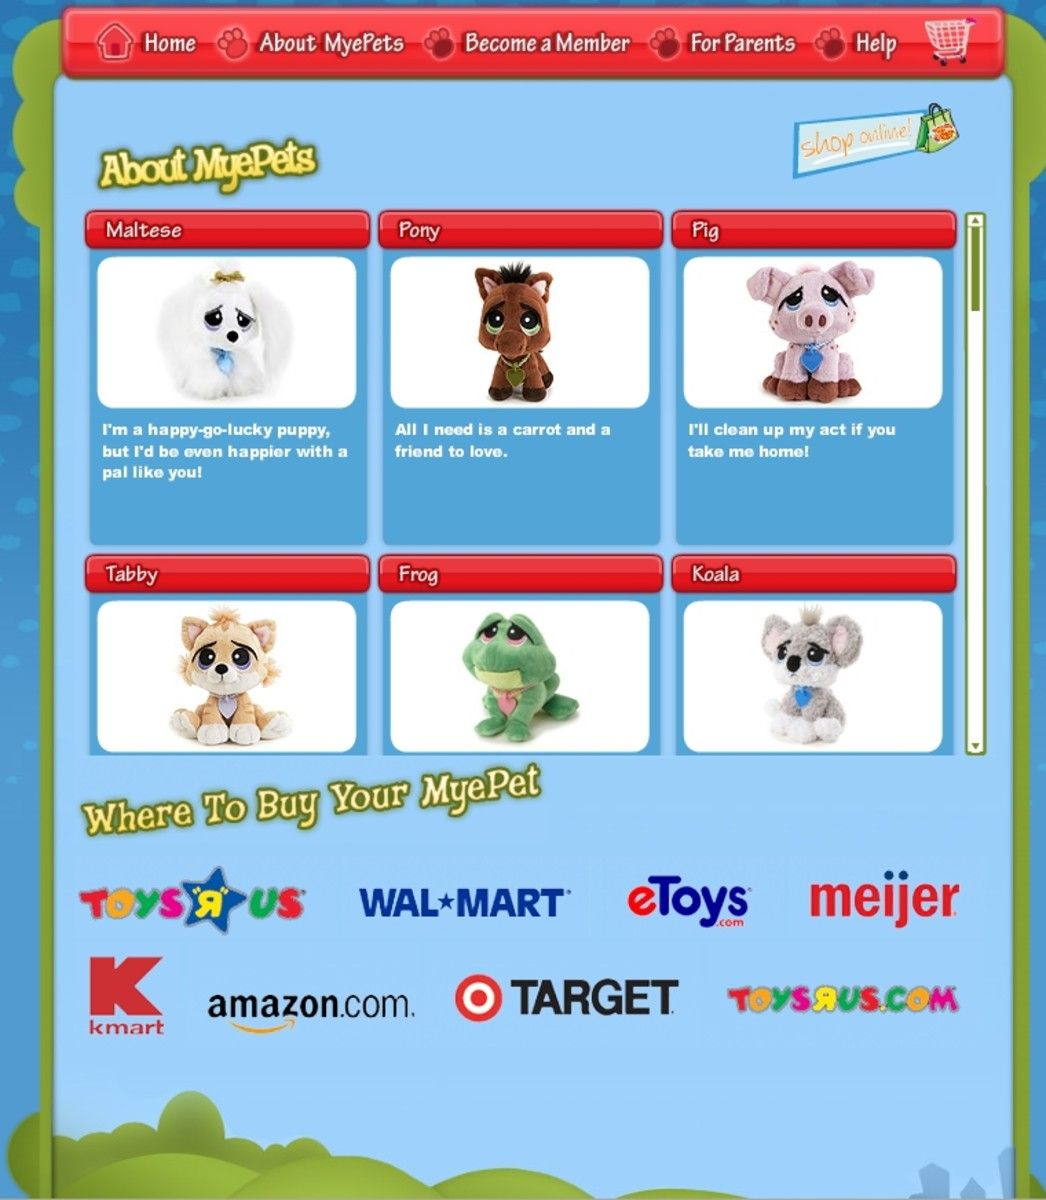 MyePets can be purchased at major retailers.